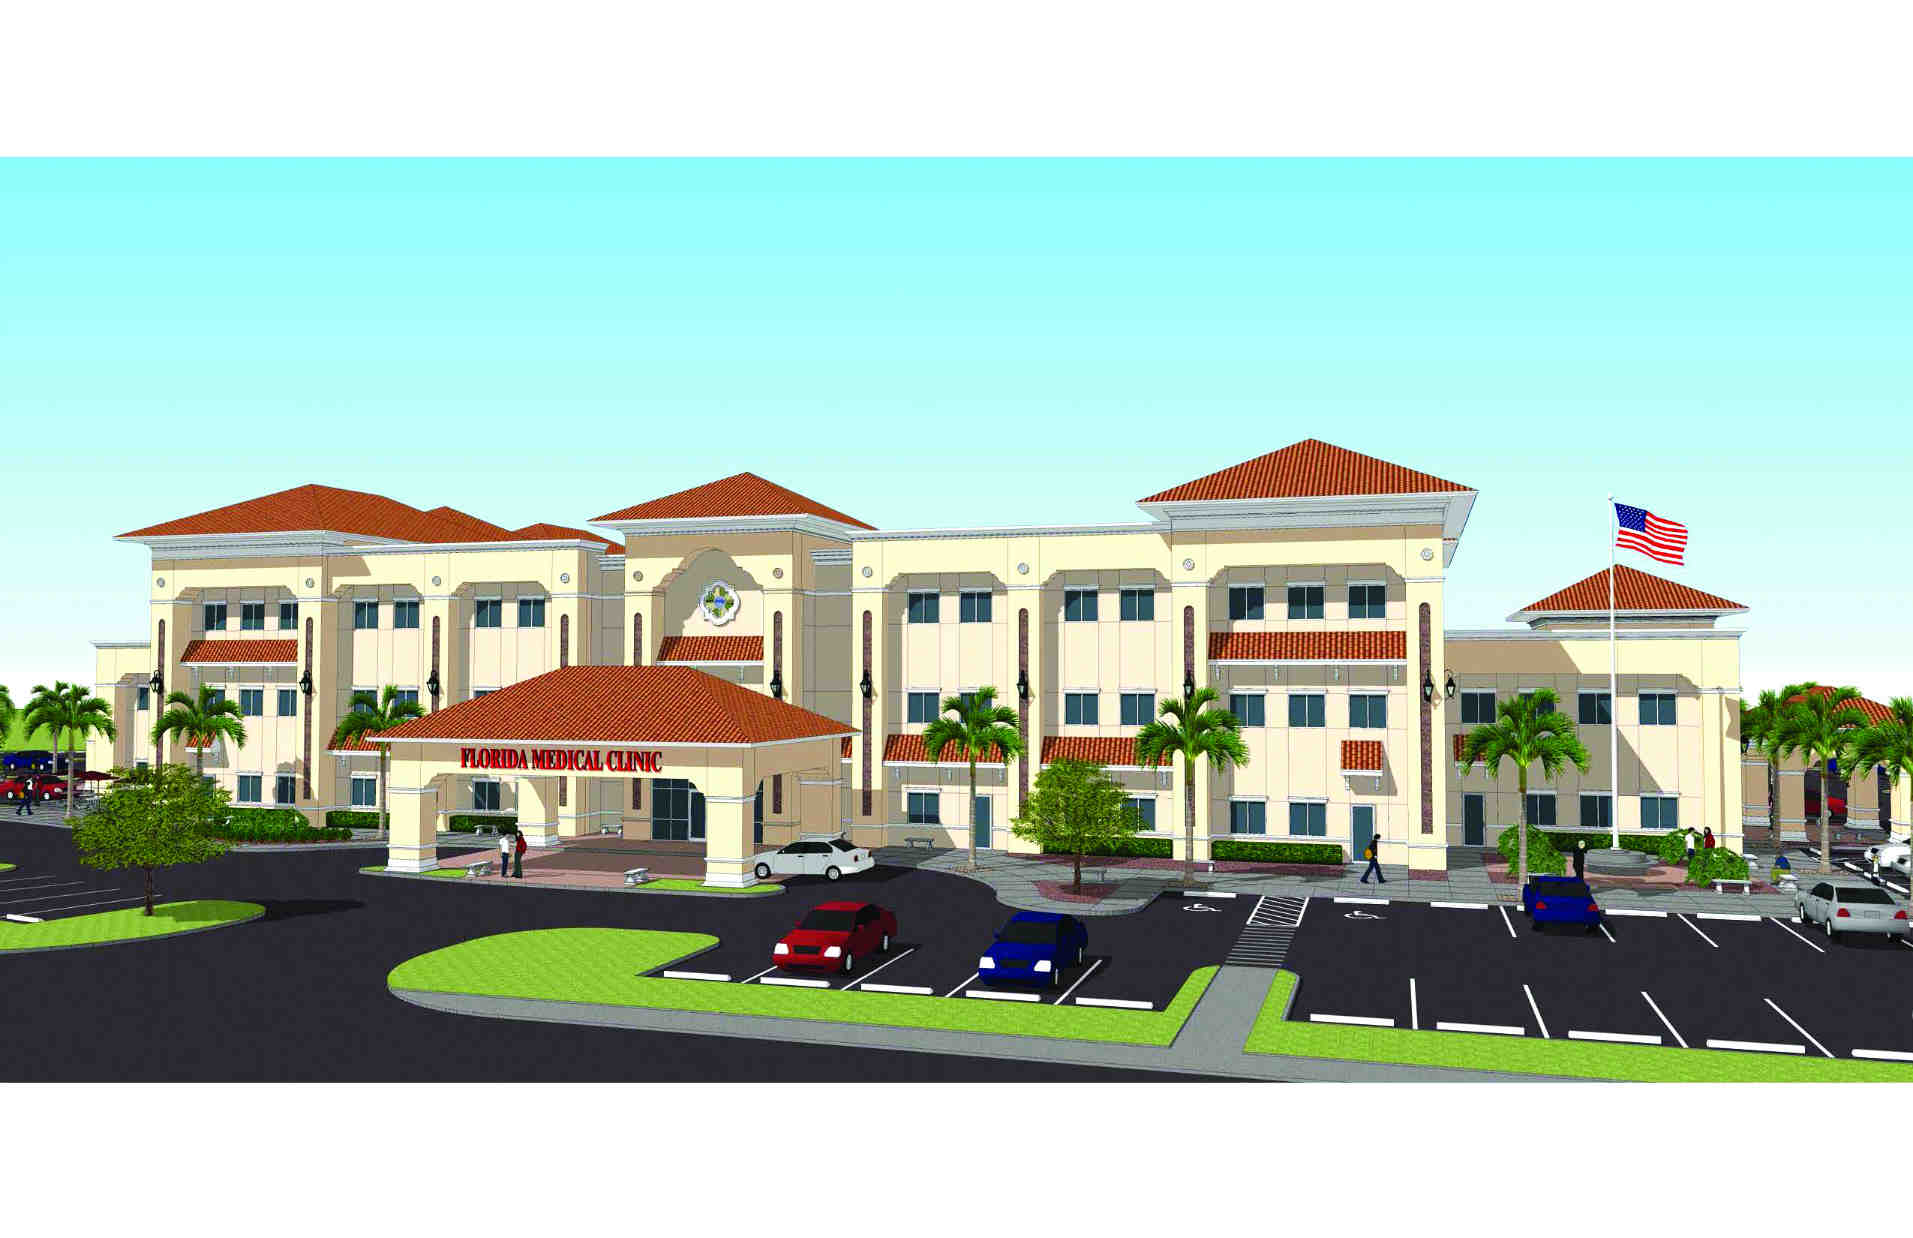 Florida Medical Clinic\'s expansion story continues